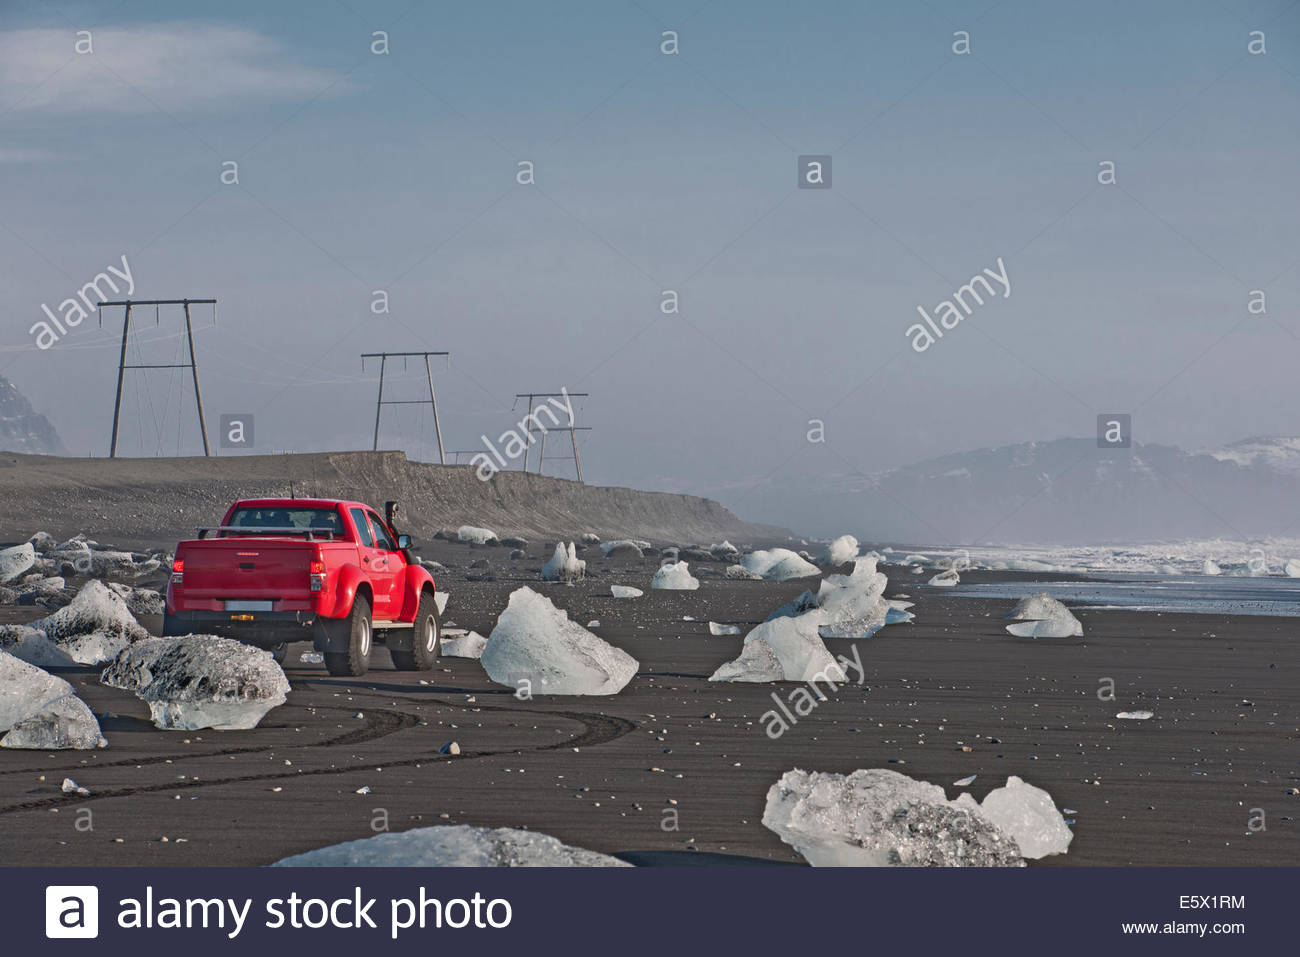 Off road vehicle parked on iceberg beach, Jokulsarlon, South East Iceland, Iceland - Stock Image